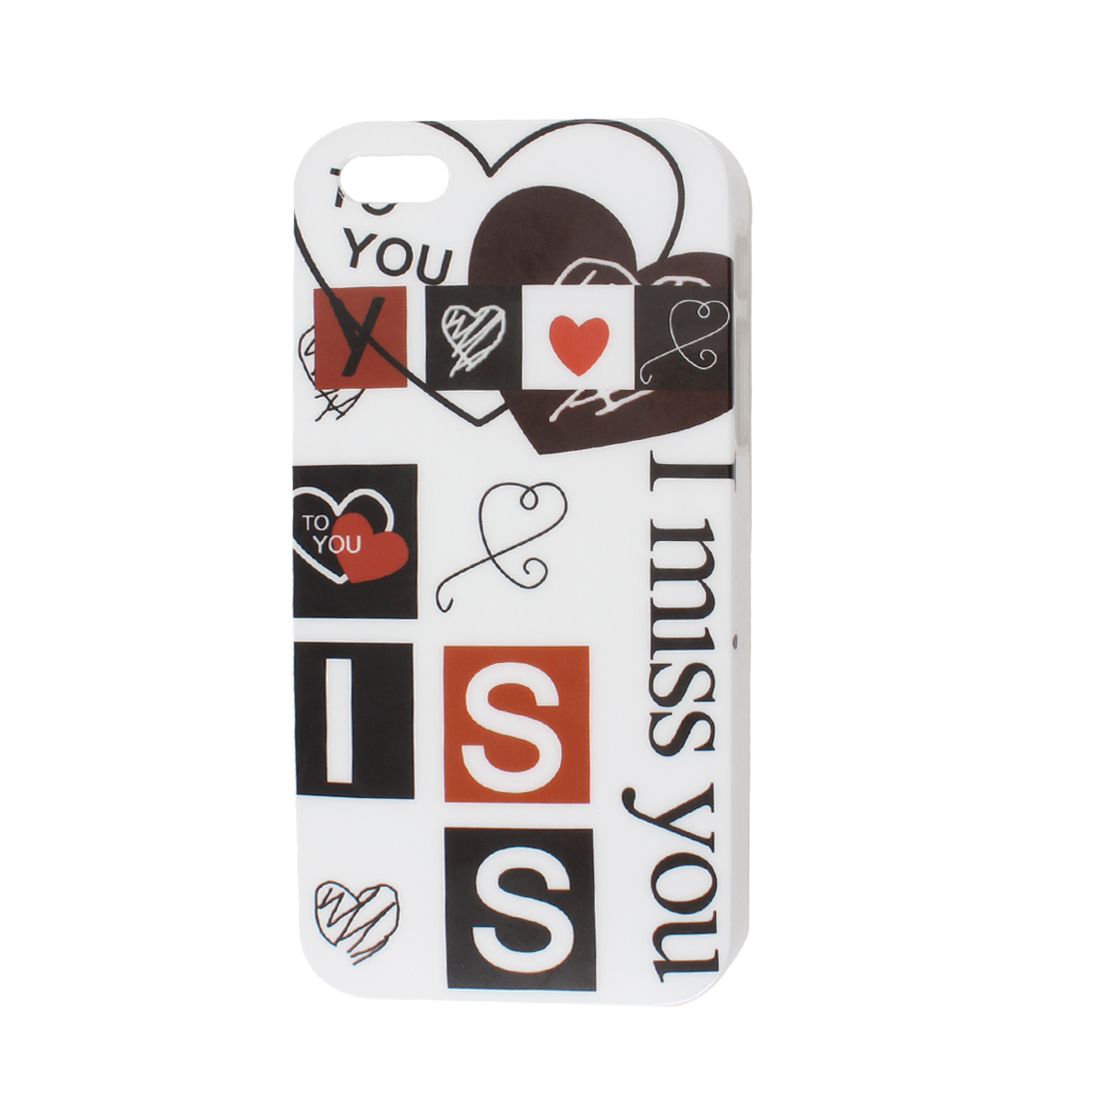 I Miss You Pattern White Background IMD Hard Back Case Cover for iPhone 5 5G